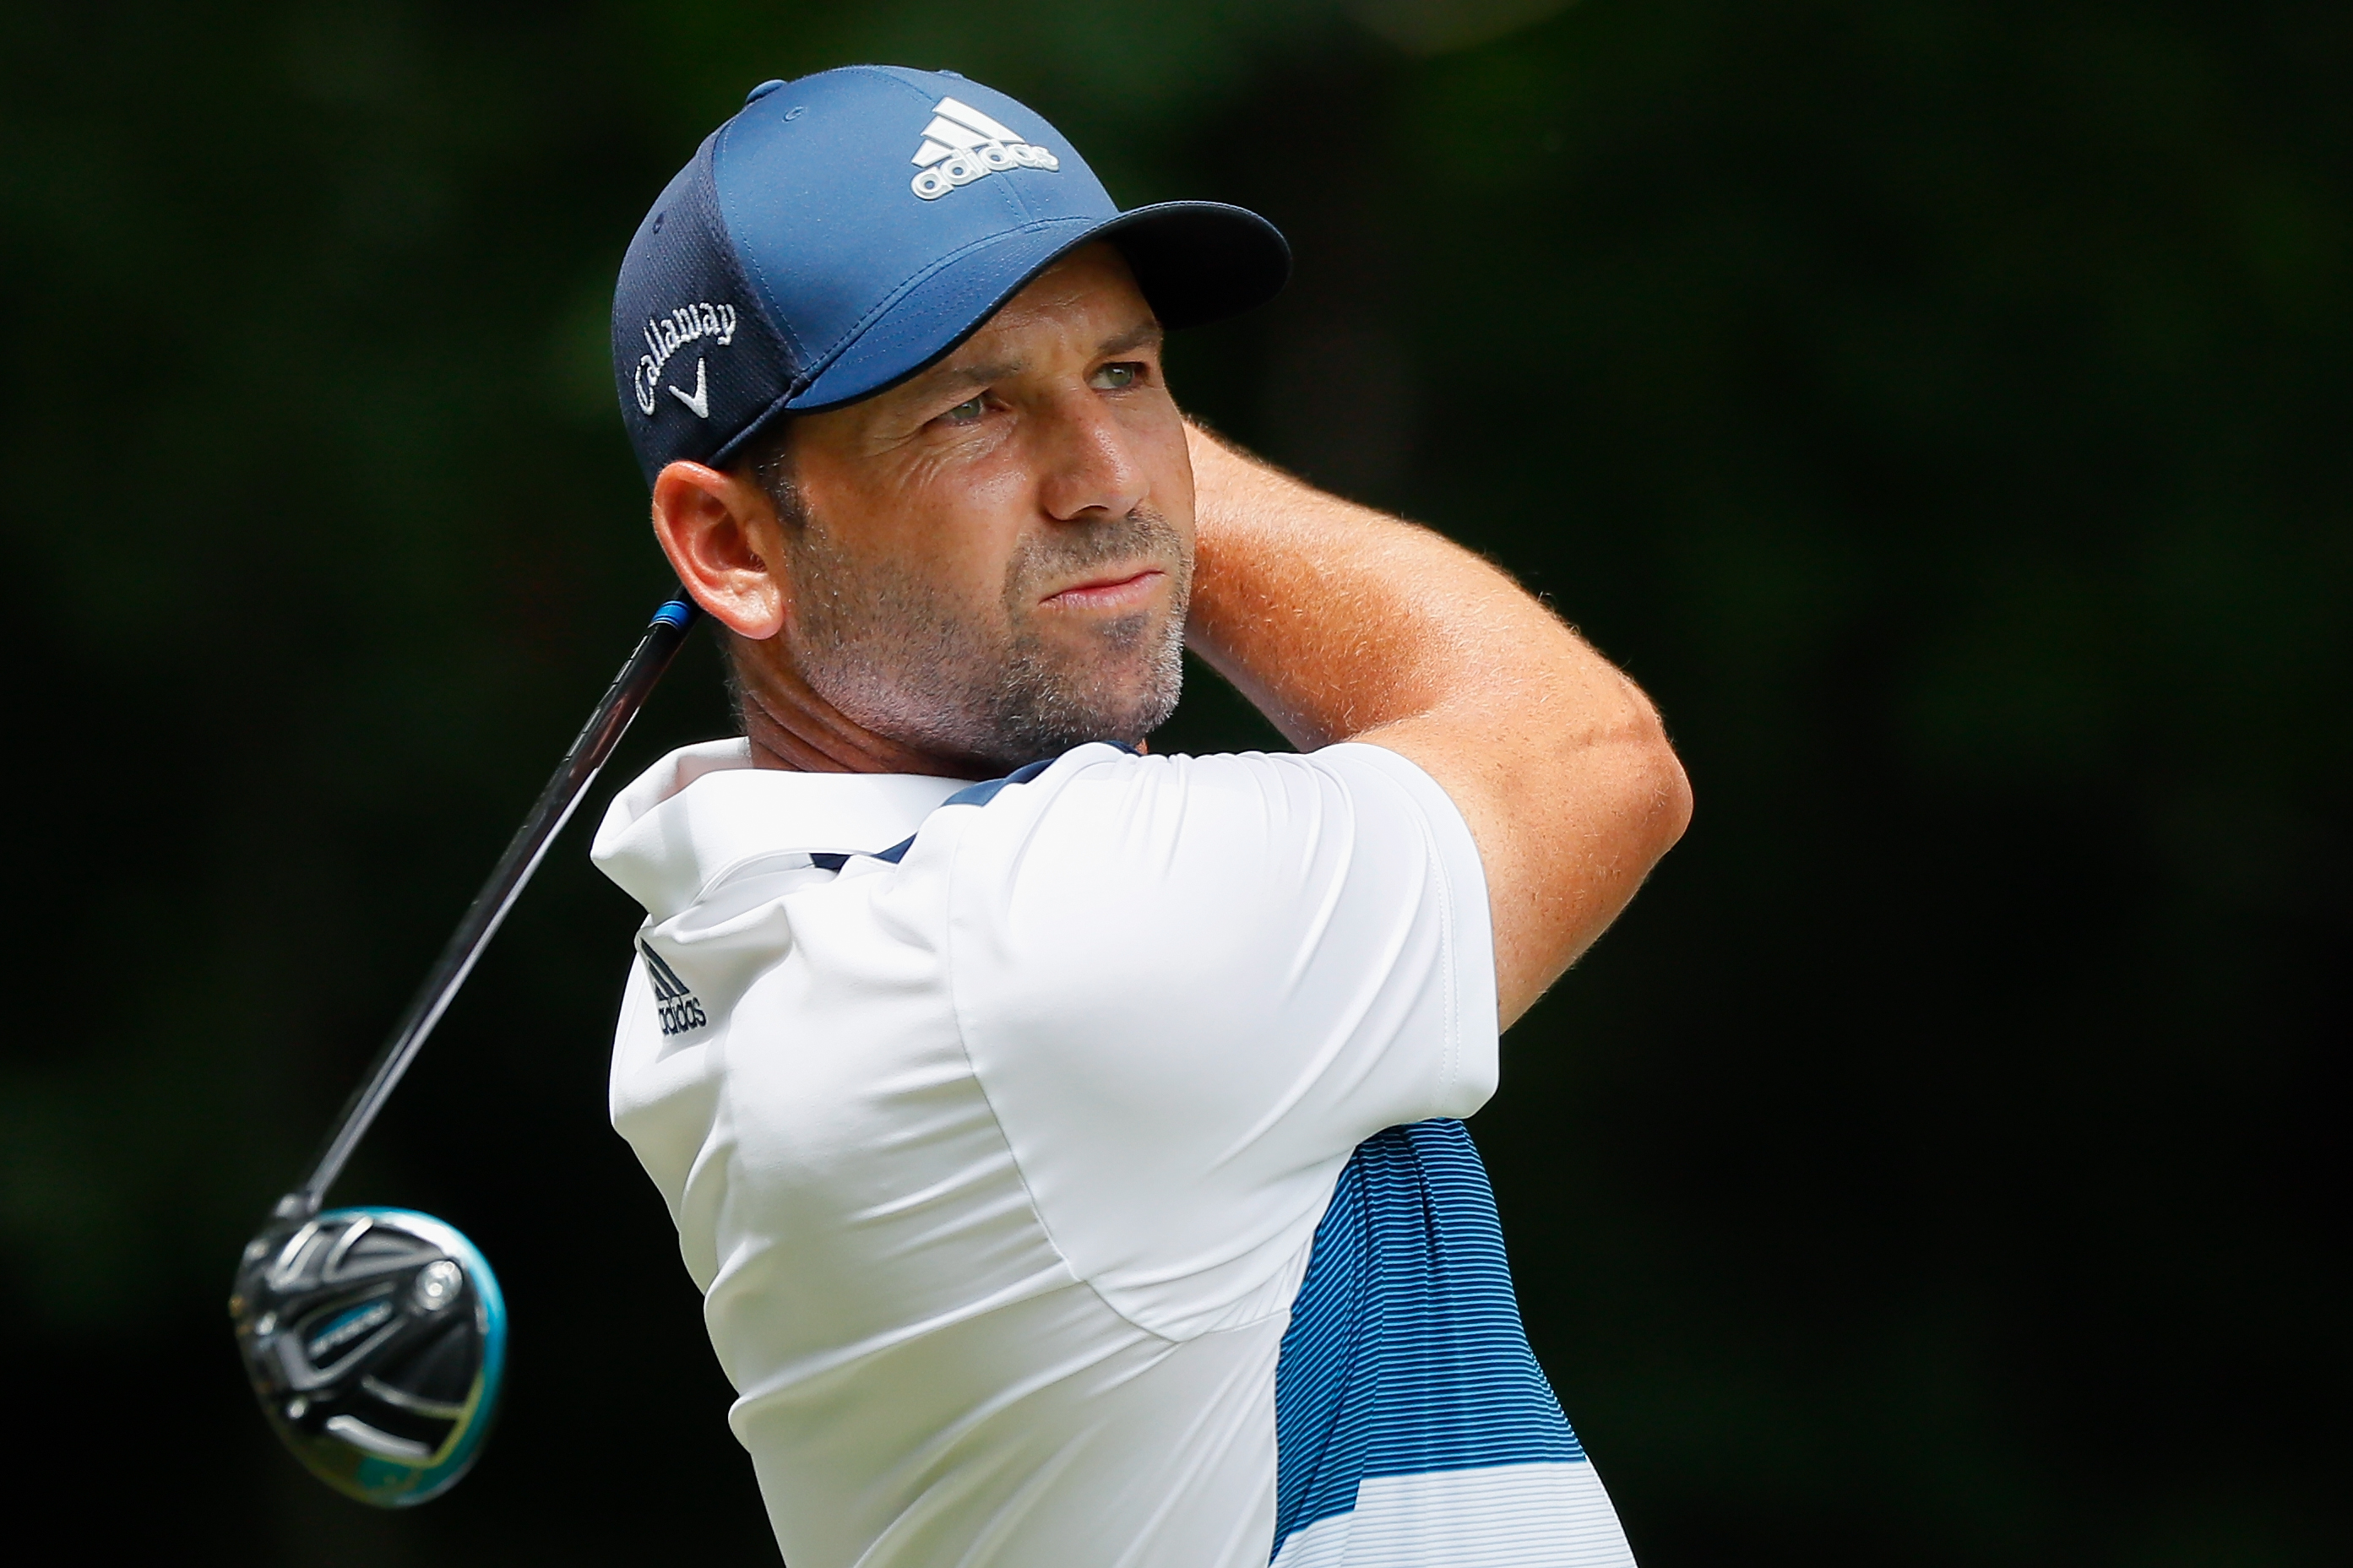 GREENSBORO, NC - AUGUST 18:  Sergio Garcia of Spain plays his shot from the second tee during the third round of the Wyndham Championship at Sedgefield Country Club on August 18, 2018 in Greensboro, North Carolina.  (Photo by Kevin C. Cox/Getty Images)